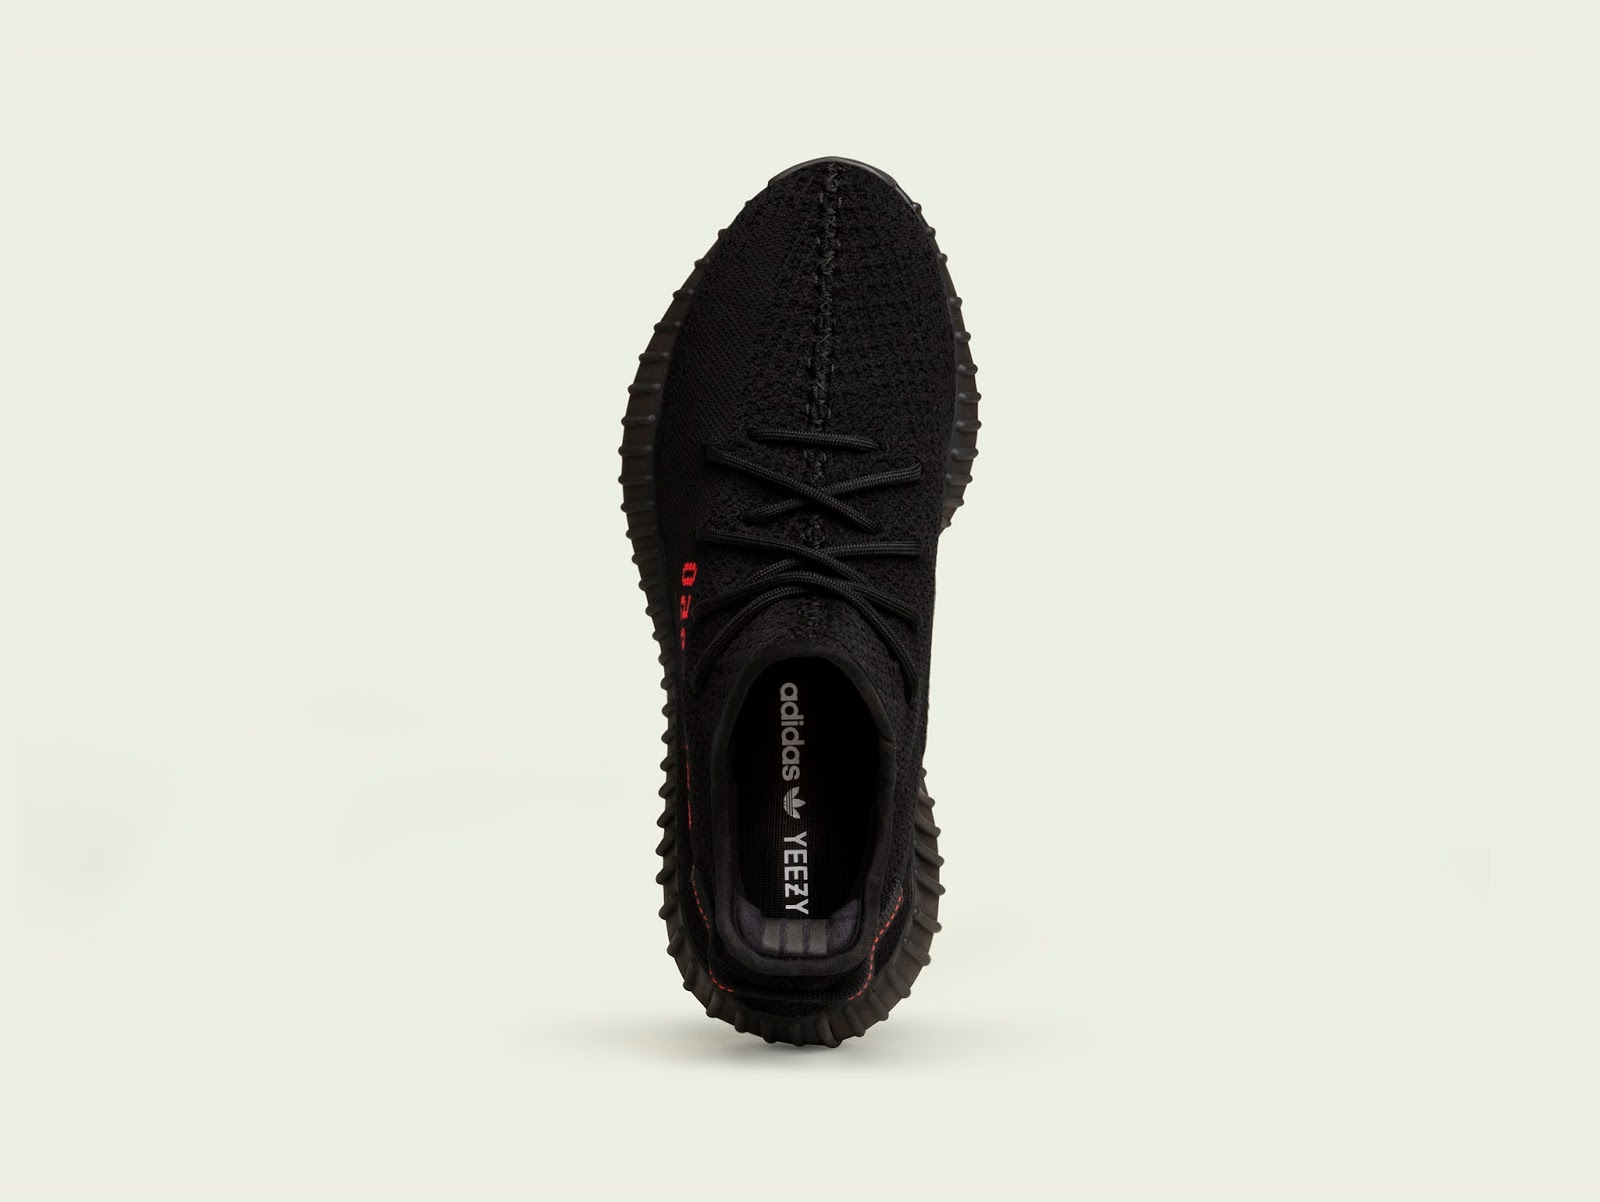 73a86e53c4a Manila Life  Kanye West and Adidas announce the Yeezy Boost 350 V2 ...